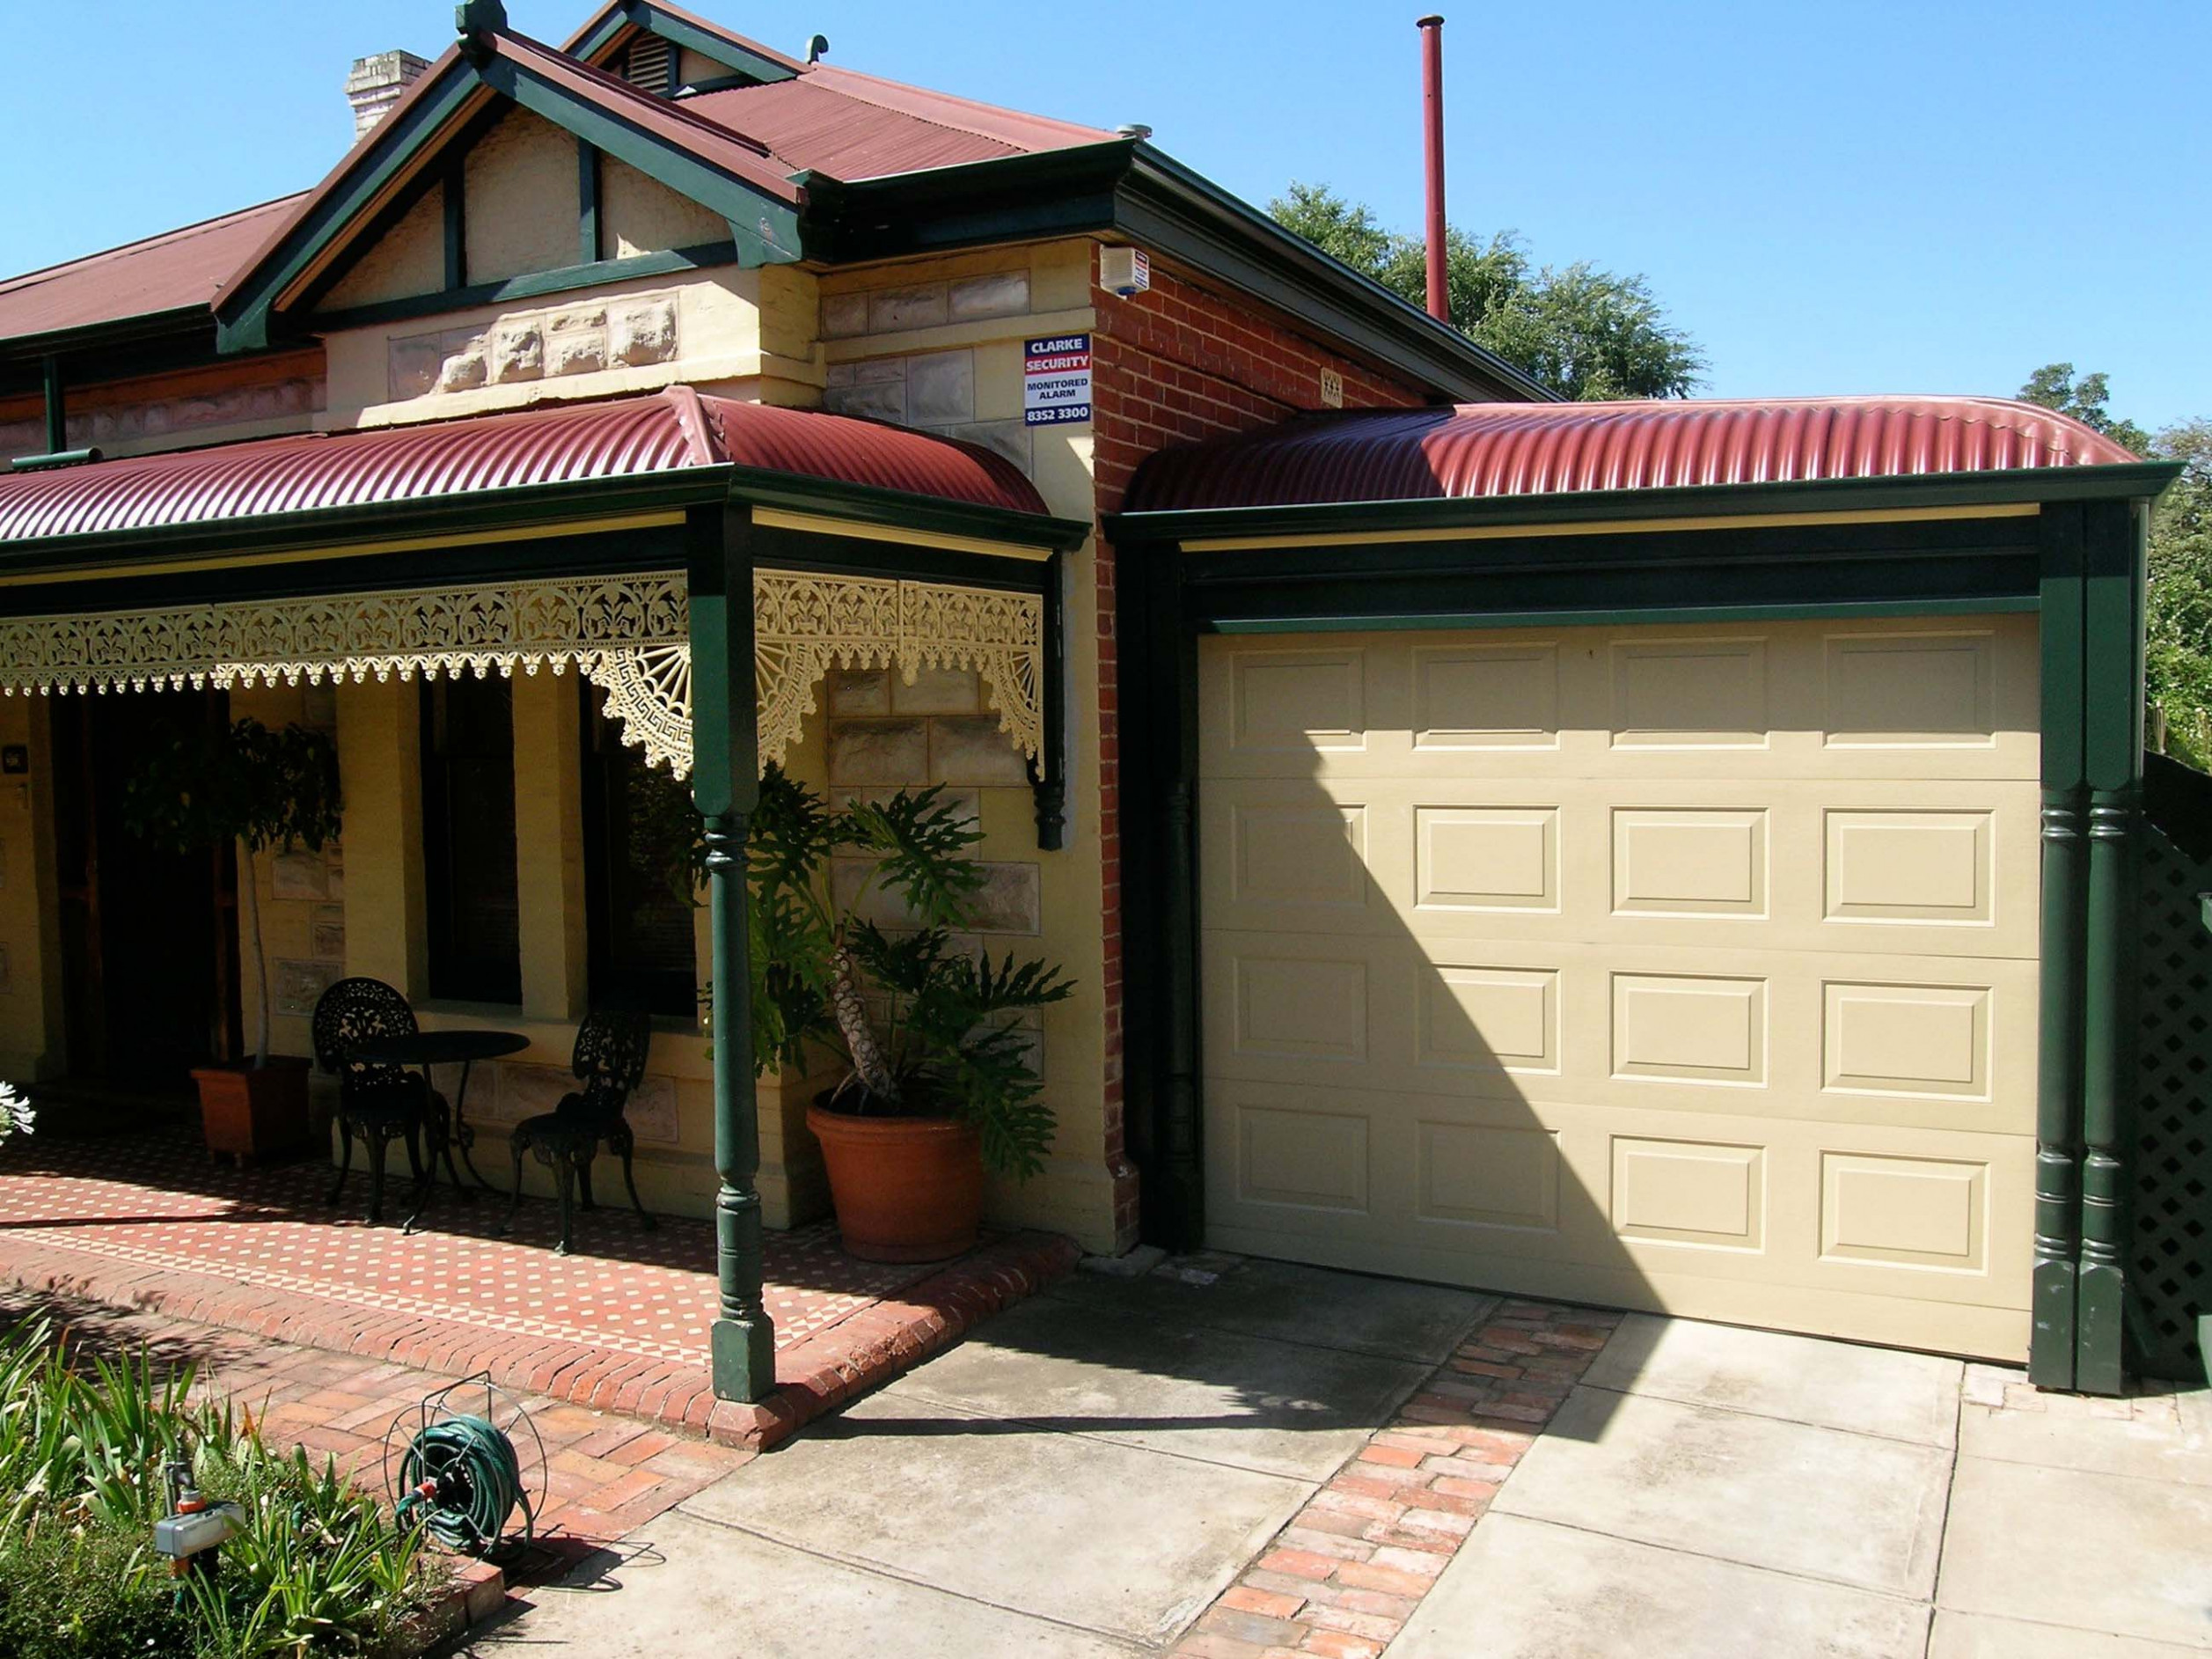 ROOFSCAPES Carports With Tiled Roof